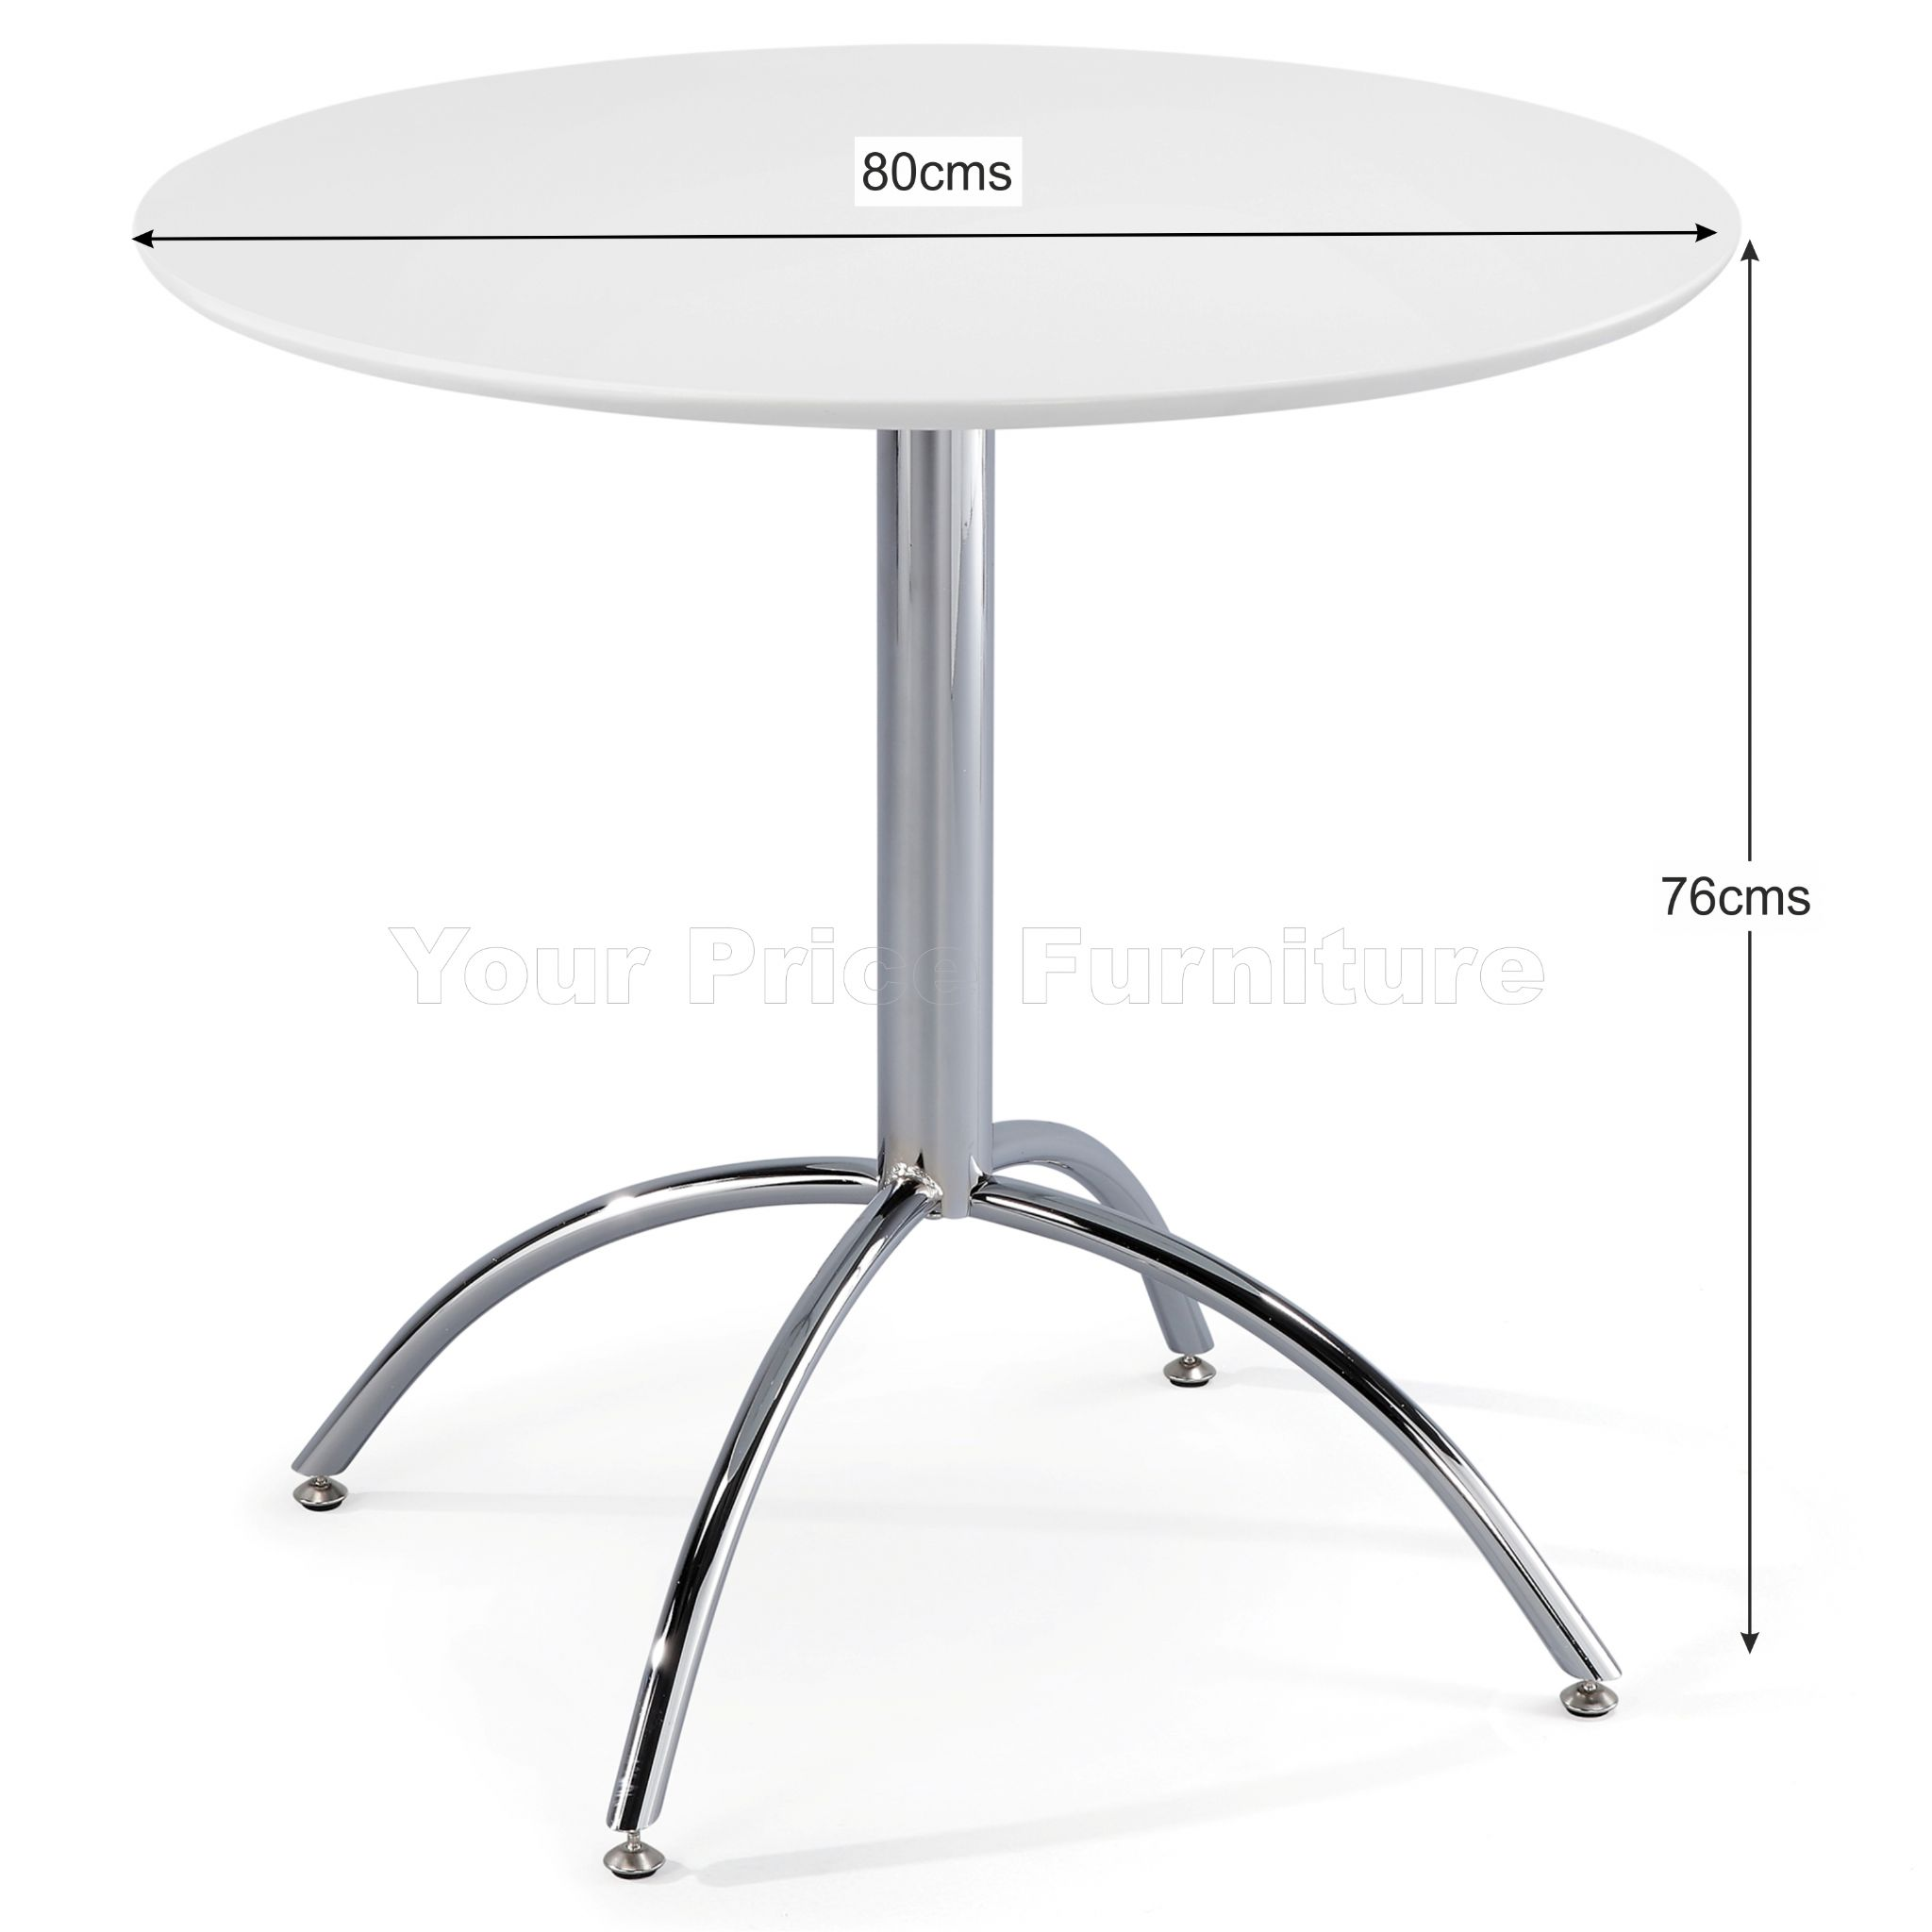 Kimberley dining set white 2 black chairs sale now on for Dining table set deals